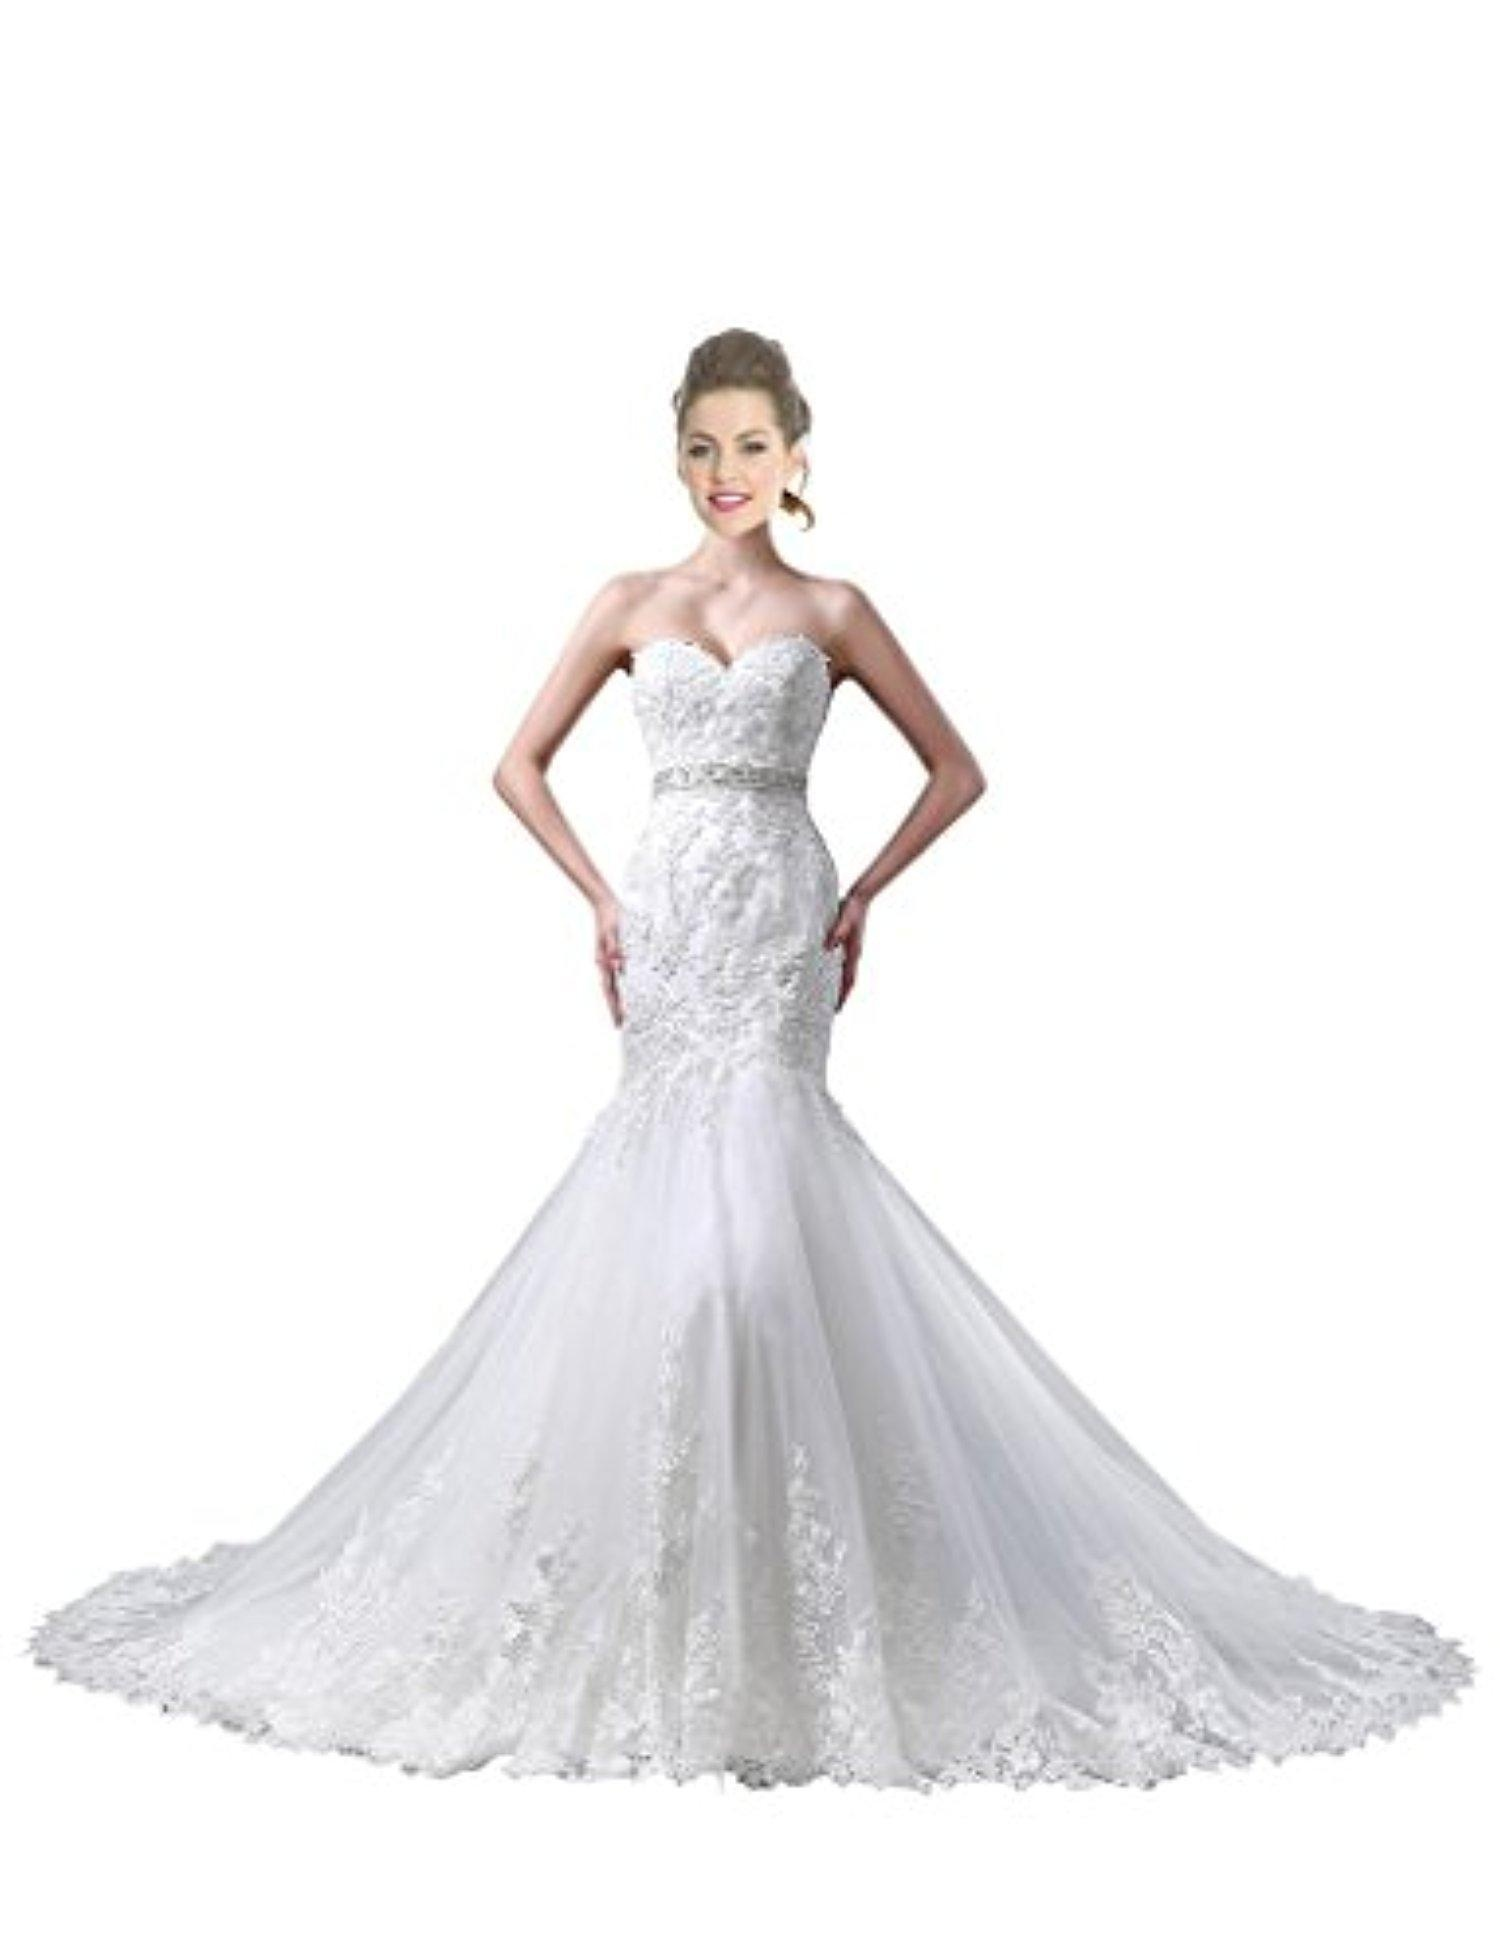 JoyVany Mermaid Wedding Dresses 2016 Lace Wedding Gown with Beaded Belt White Size 14